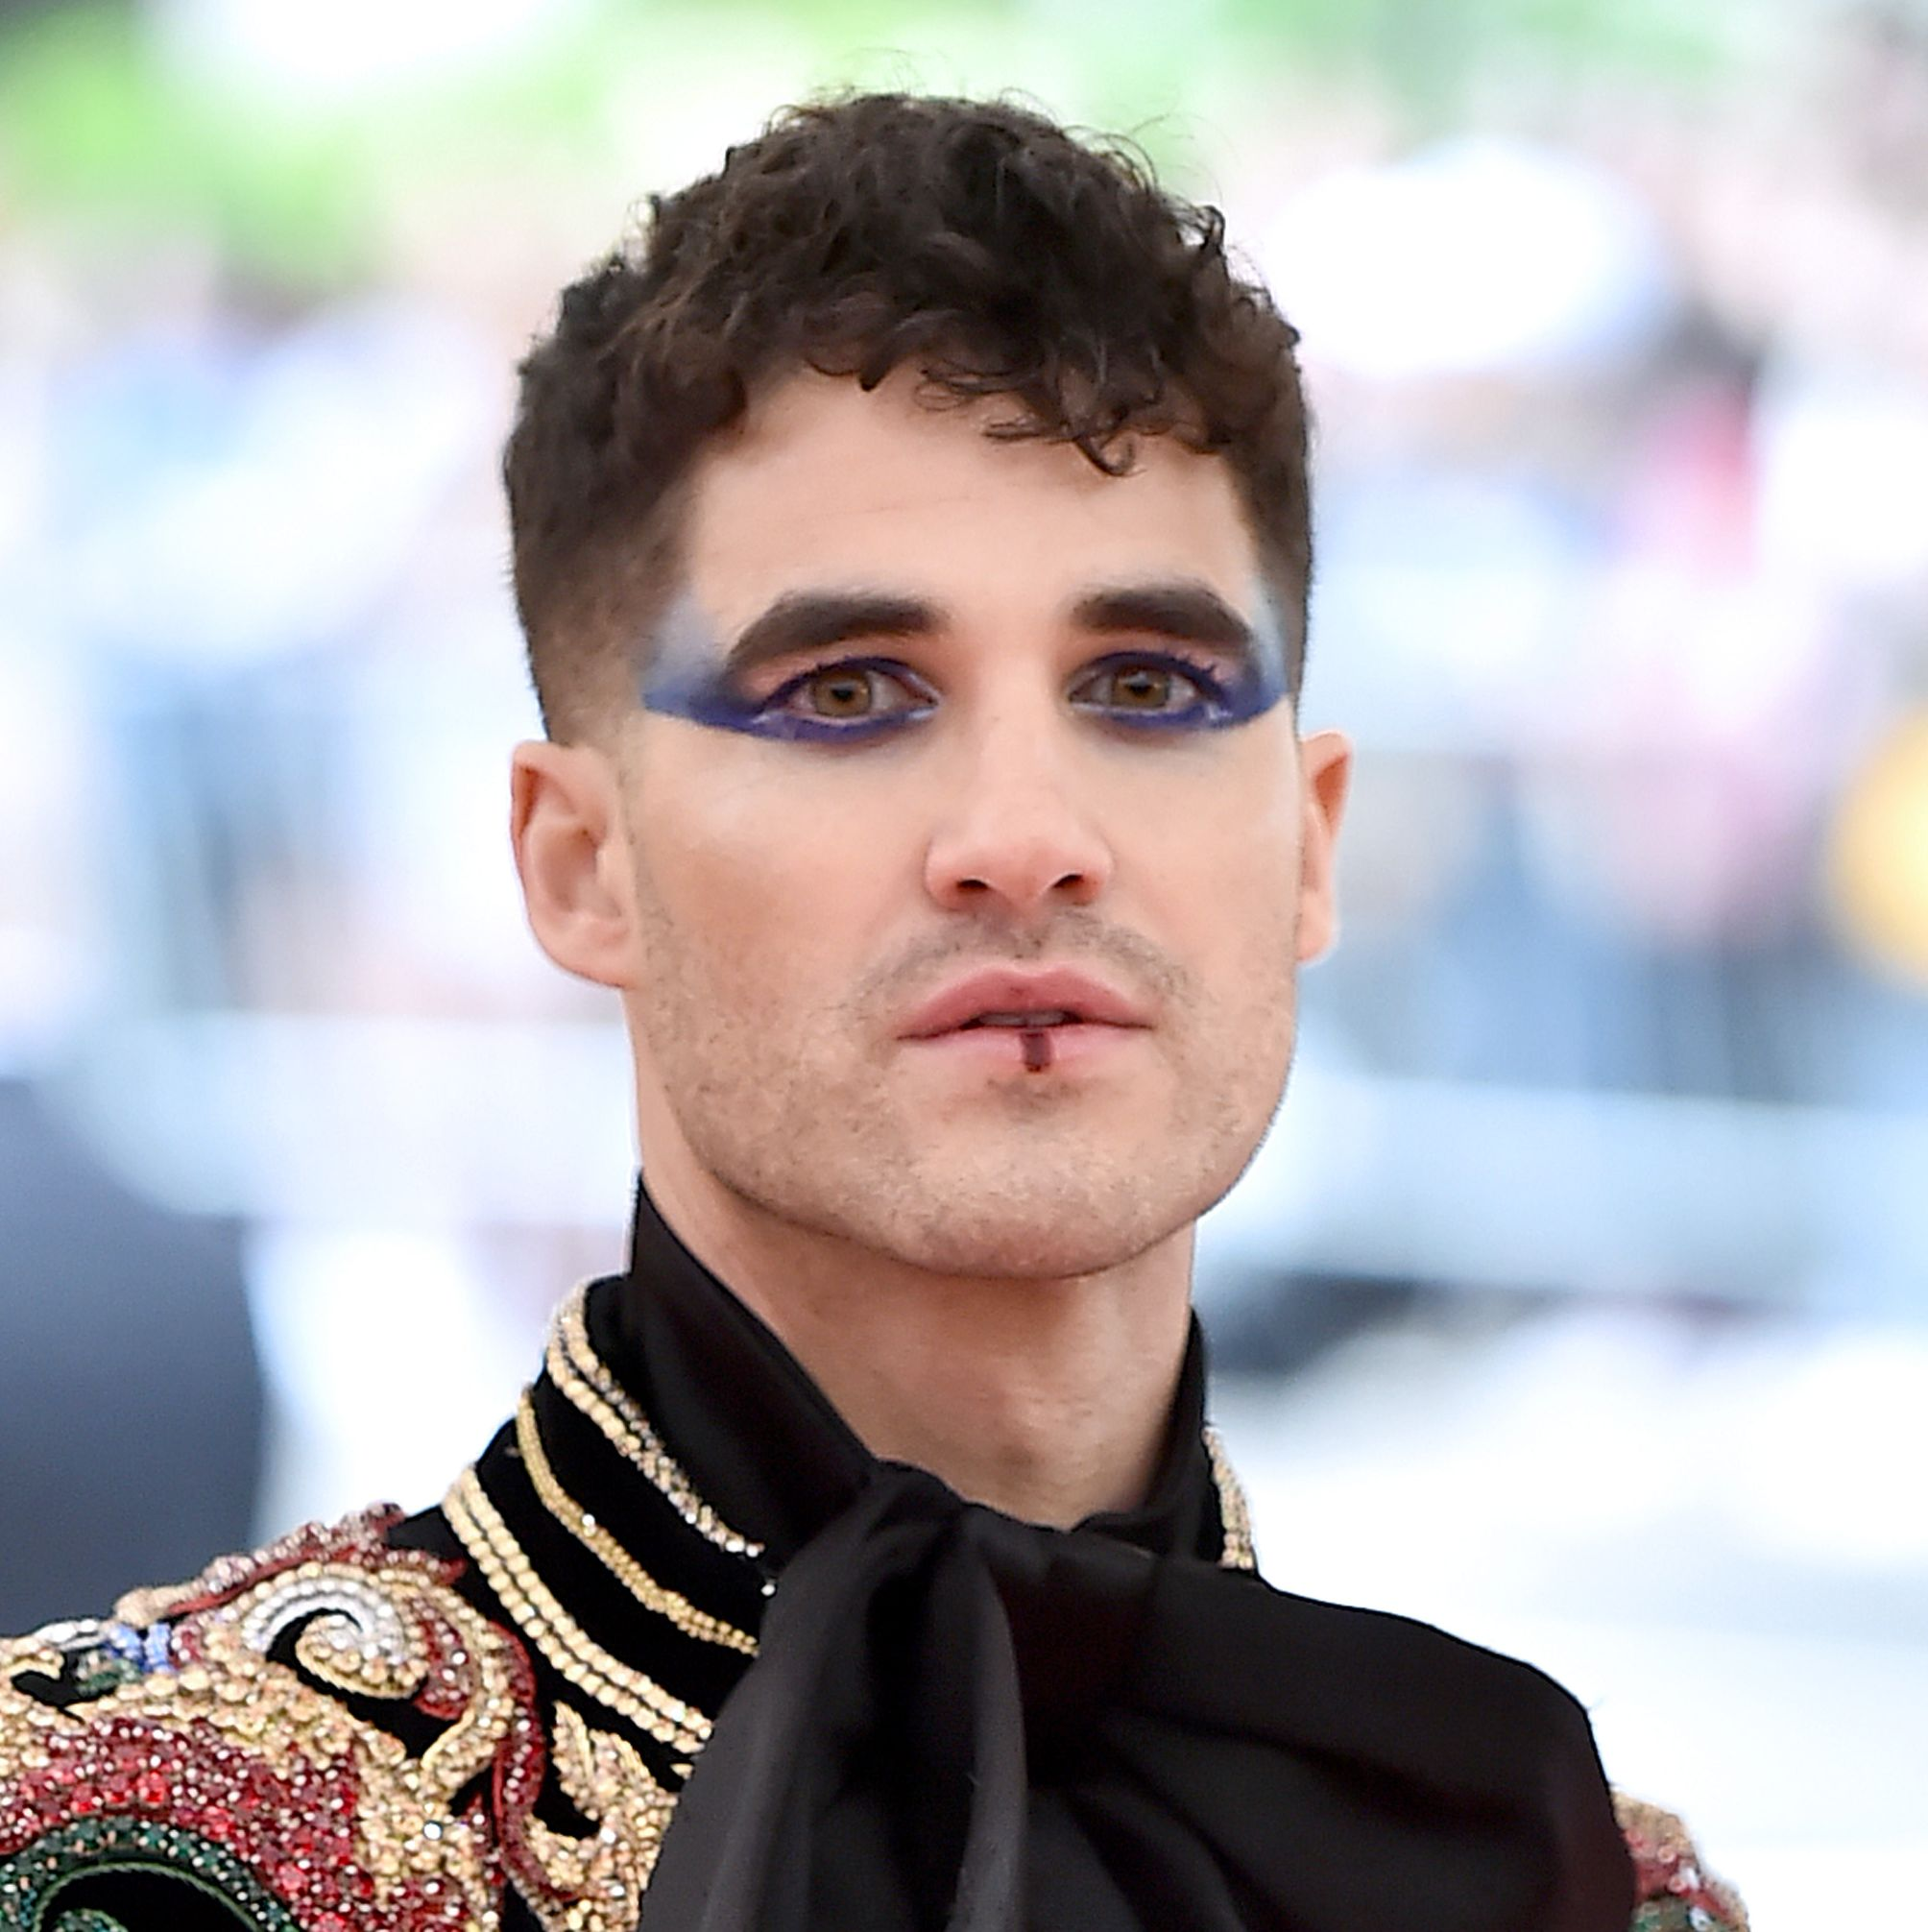 Darren Criss Criss embraced the theme in exaggerated blue eyeshadow winged out from under his eyes and a touch of color on his bottom lip.